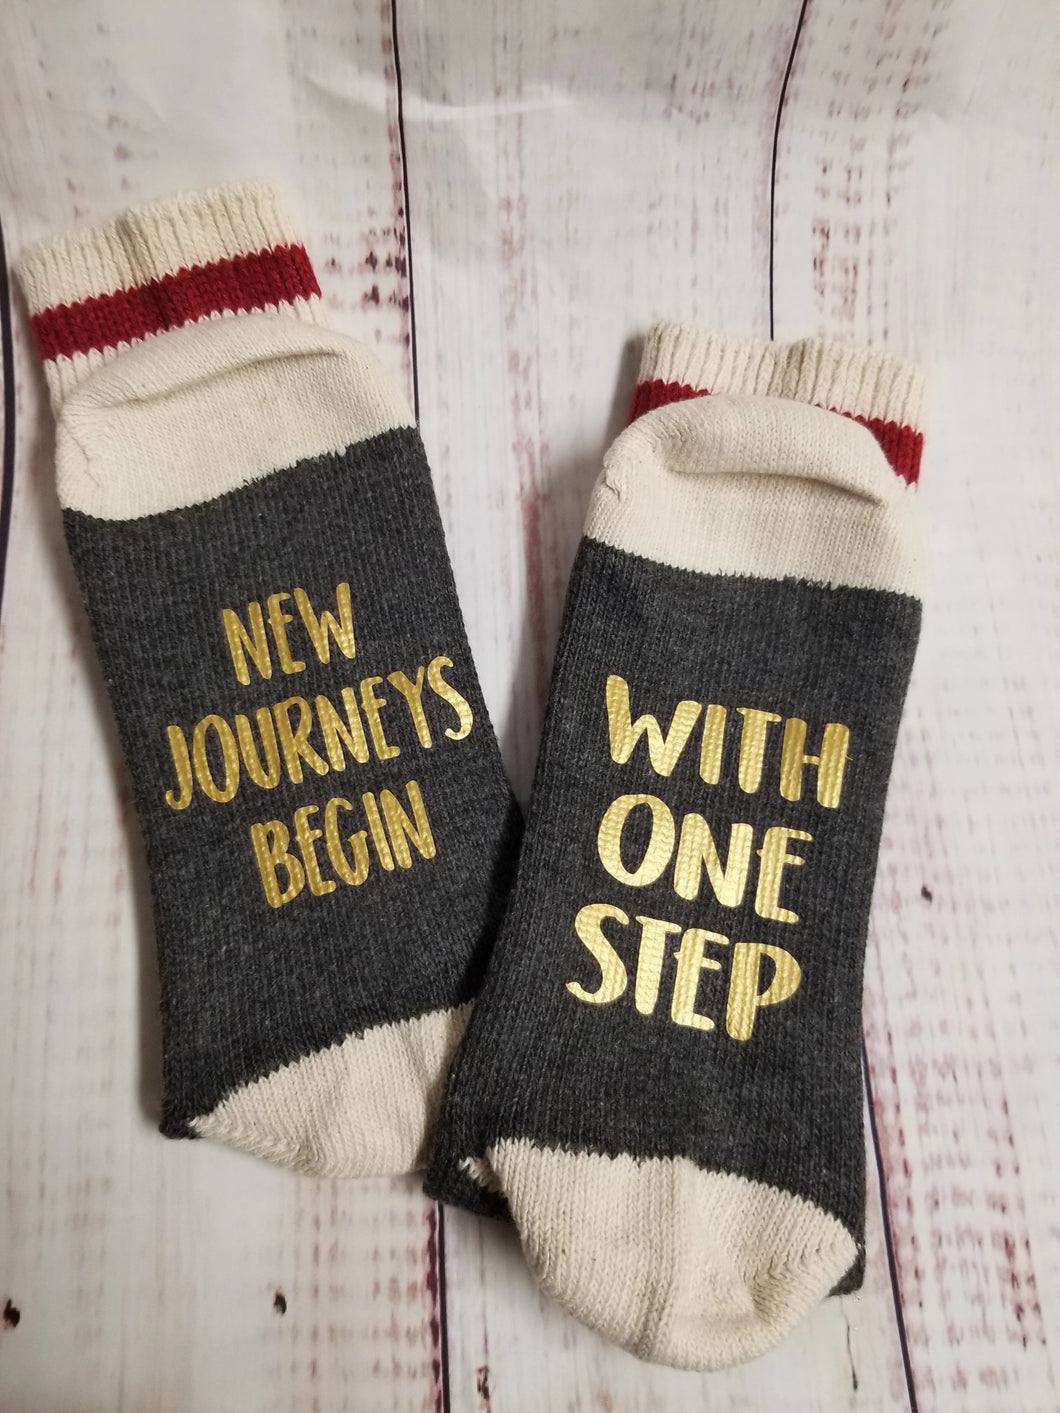 New journey begins with one step, Prayer Socks, Lucky Socks, IVF Socks - My Other Child